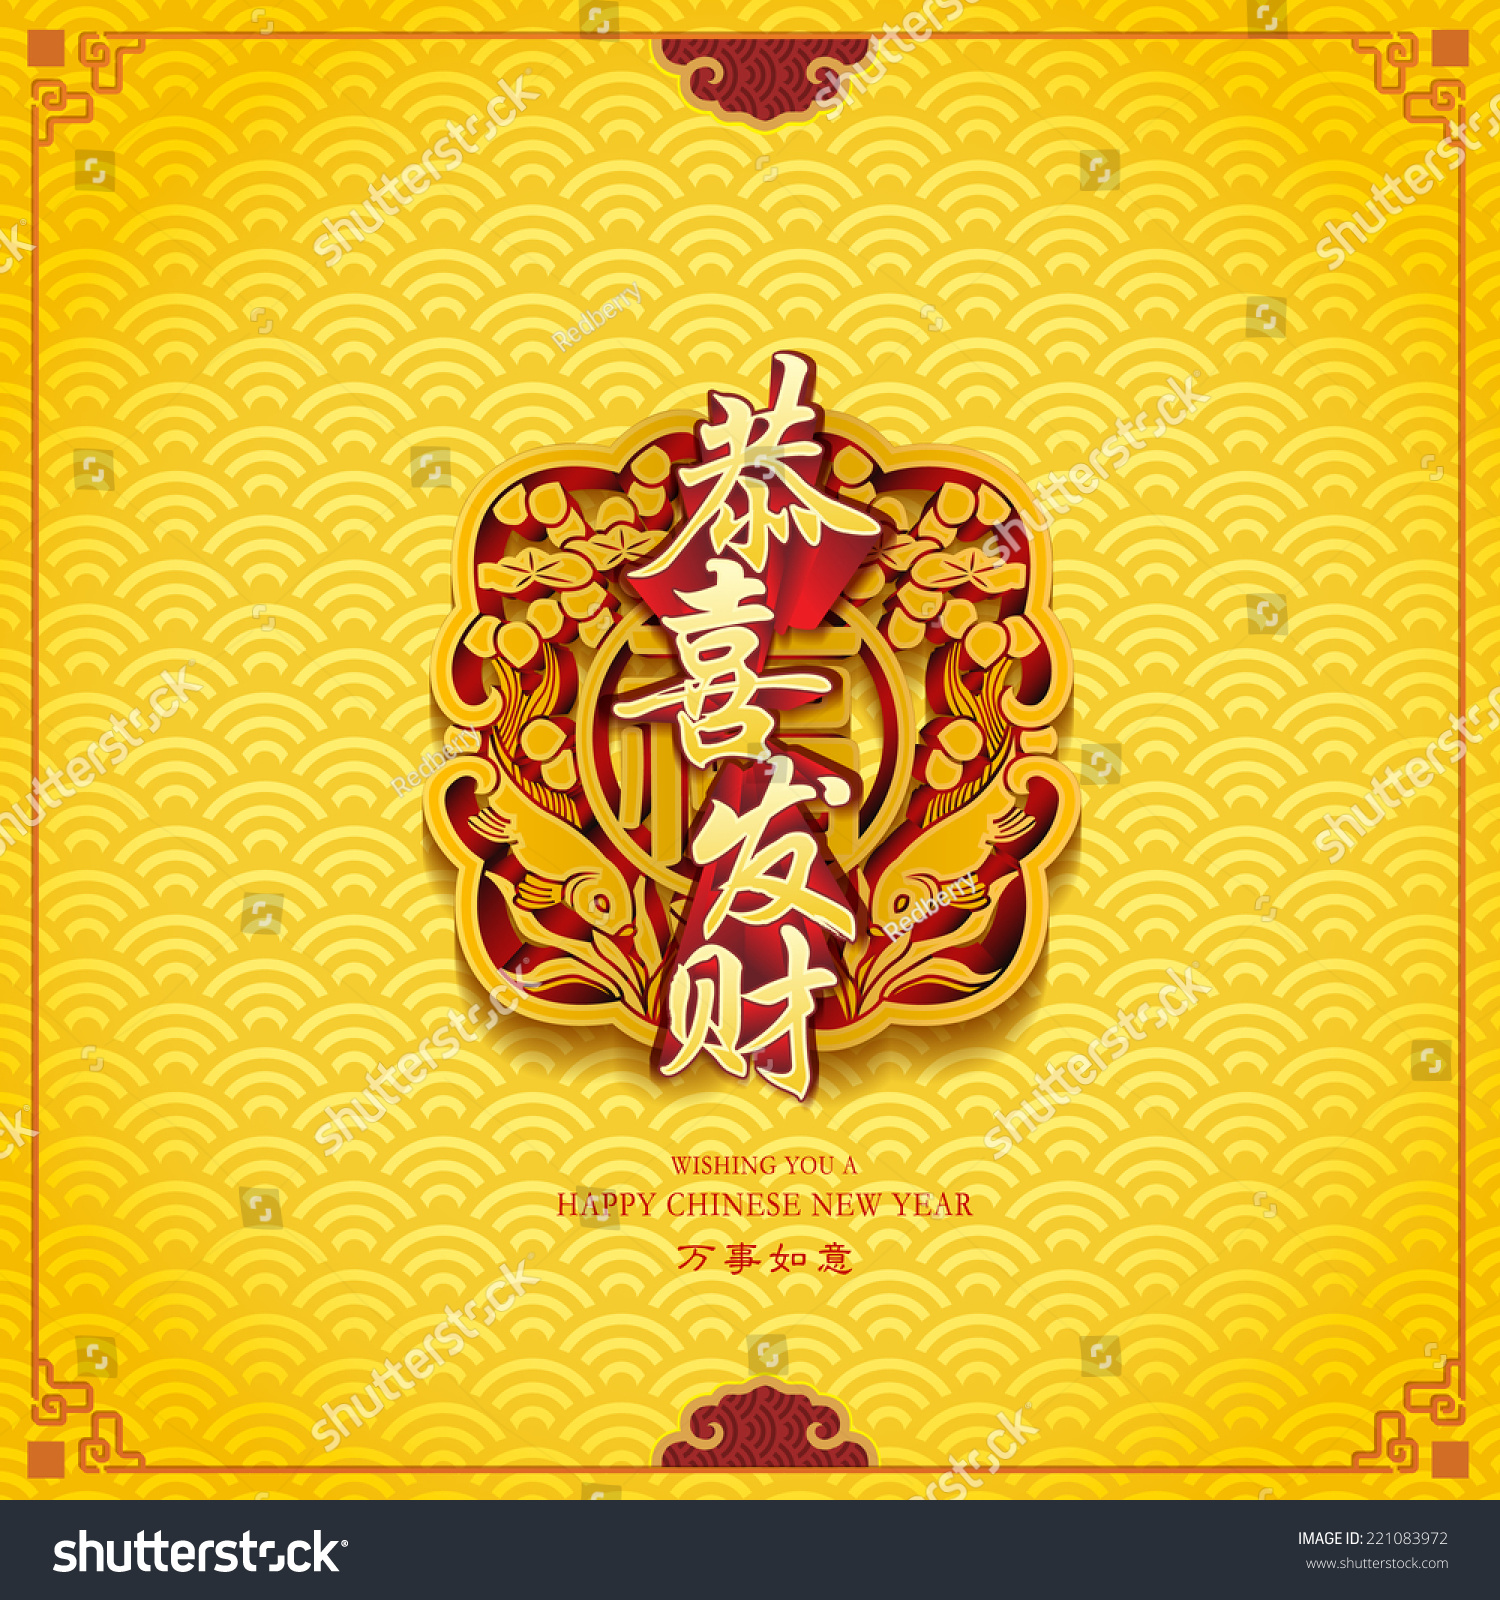 Chinese new year background The chinese character Gong Xi Fa Cai May Prosperity Be With You Wan Shi Ru Yi Good luck in every thing